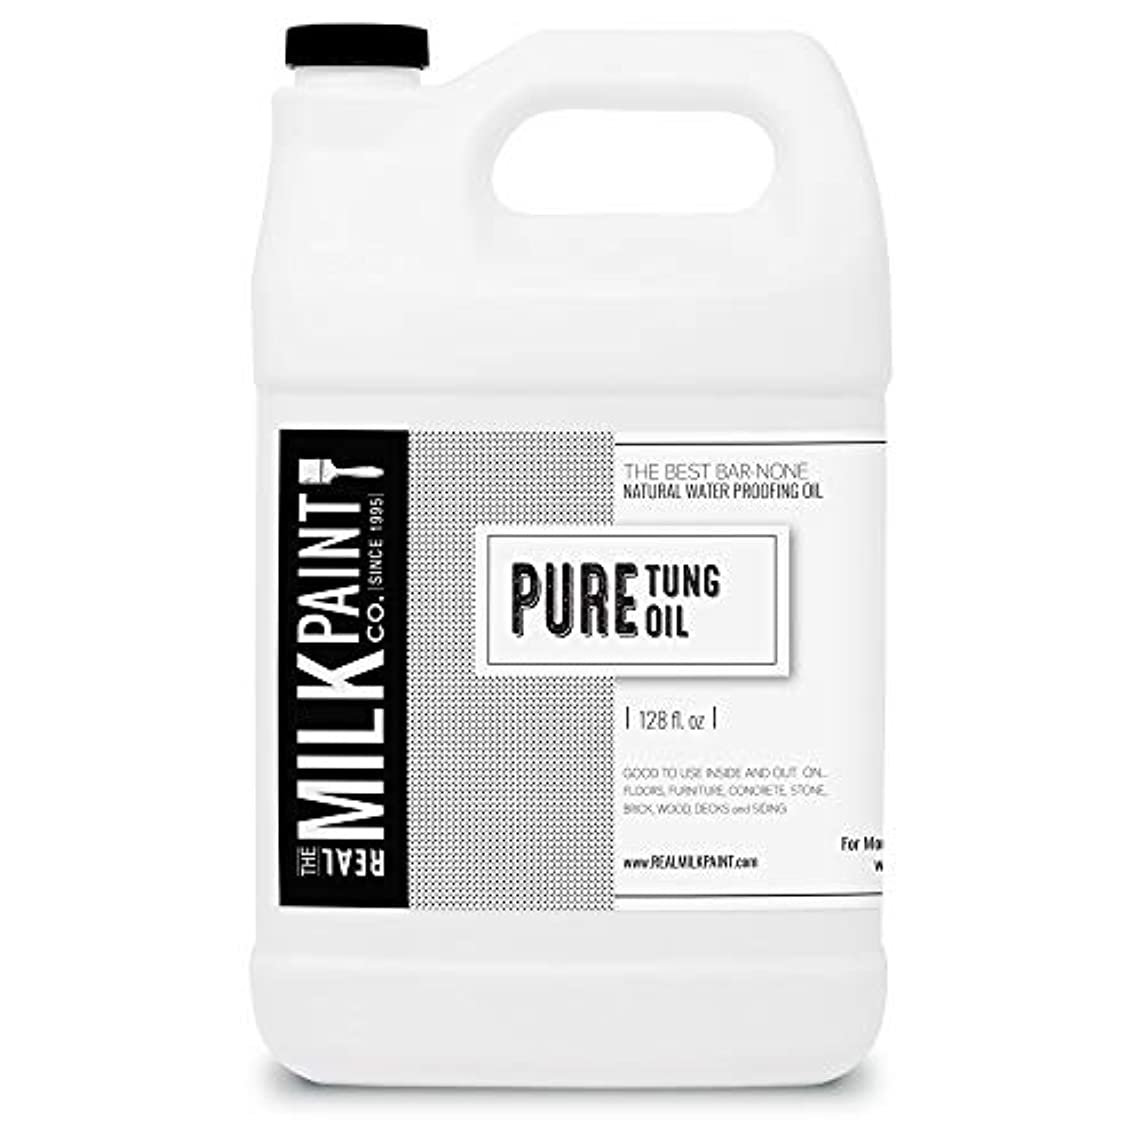 RealミルクペイントPure Tungオイル Gallon